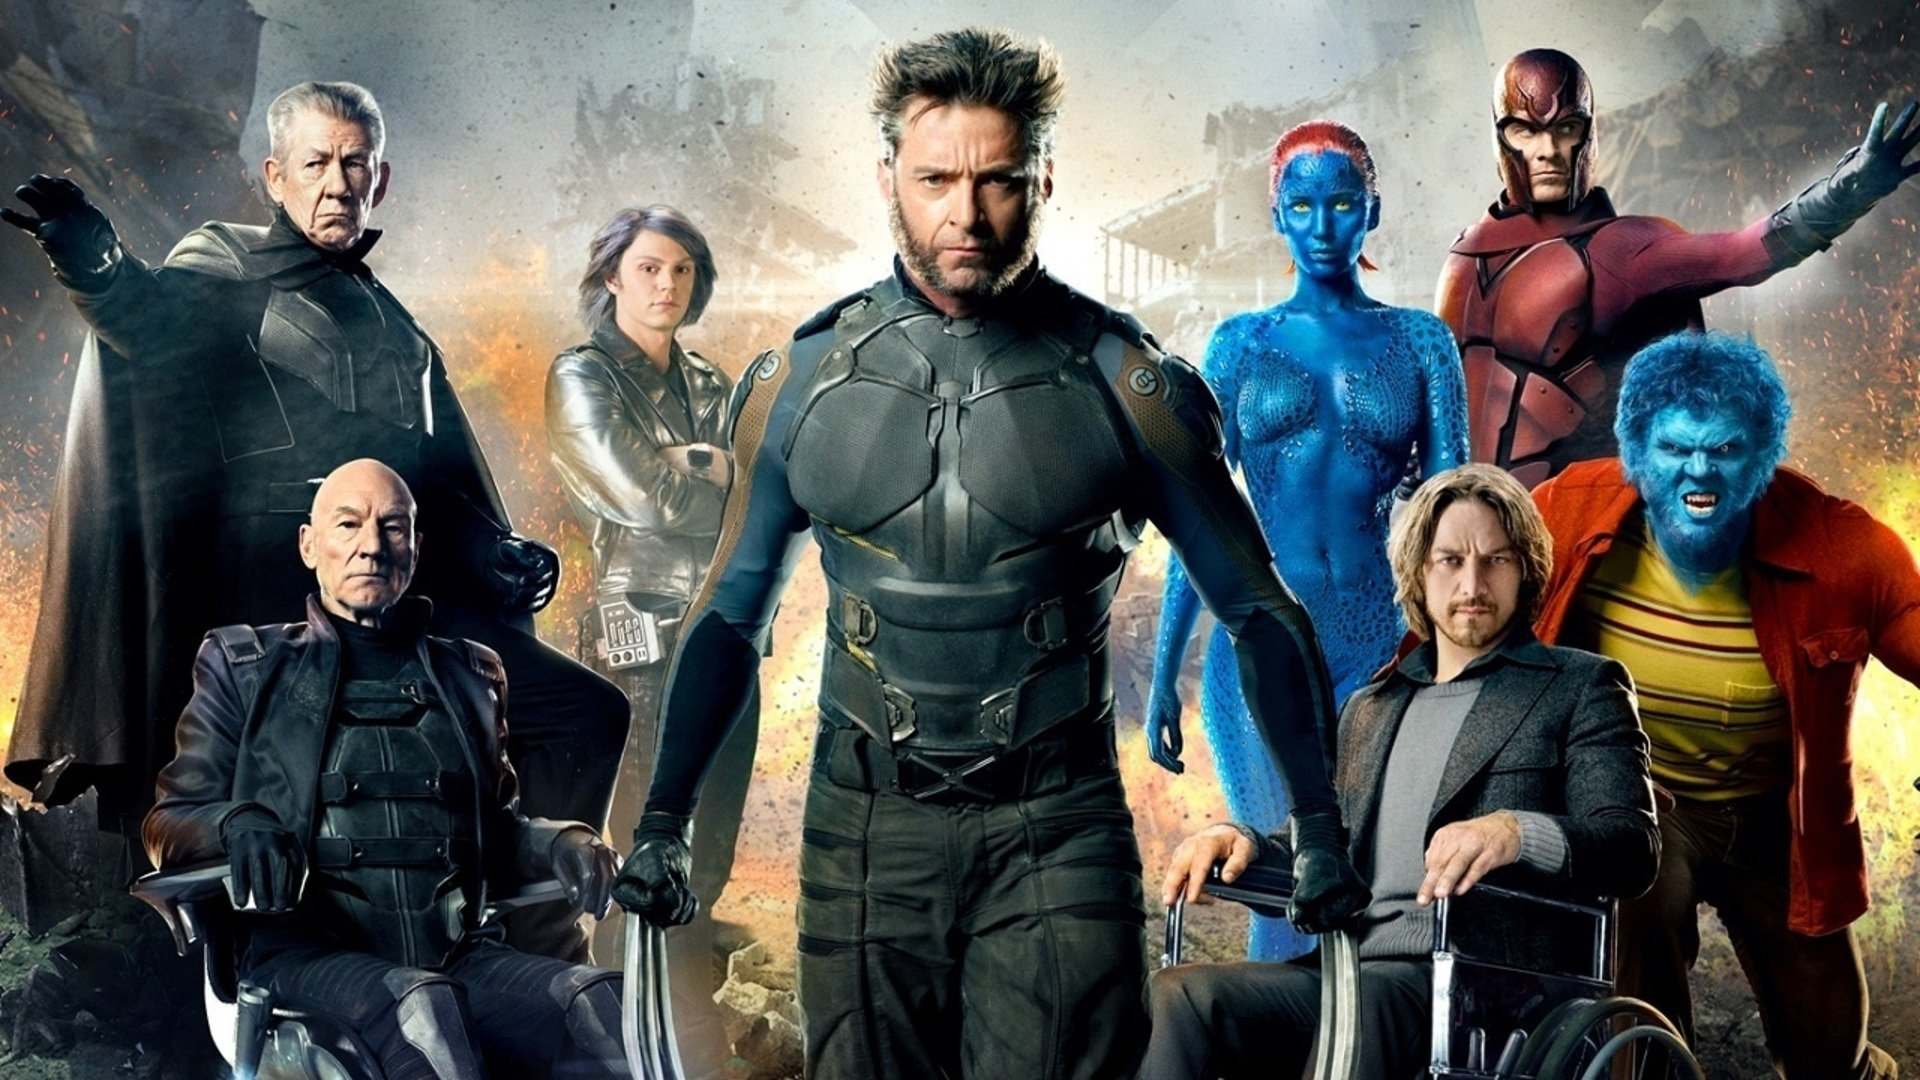 X Men Days of Future Past HD Wallpaper Background Image 1920x1080